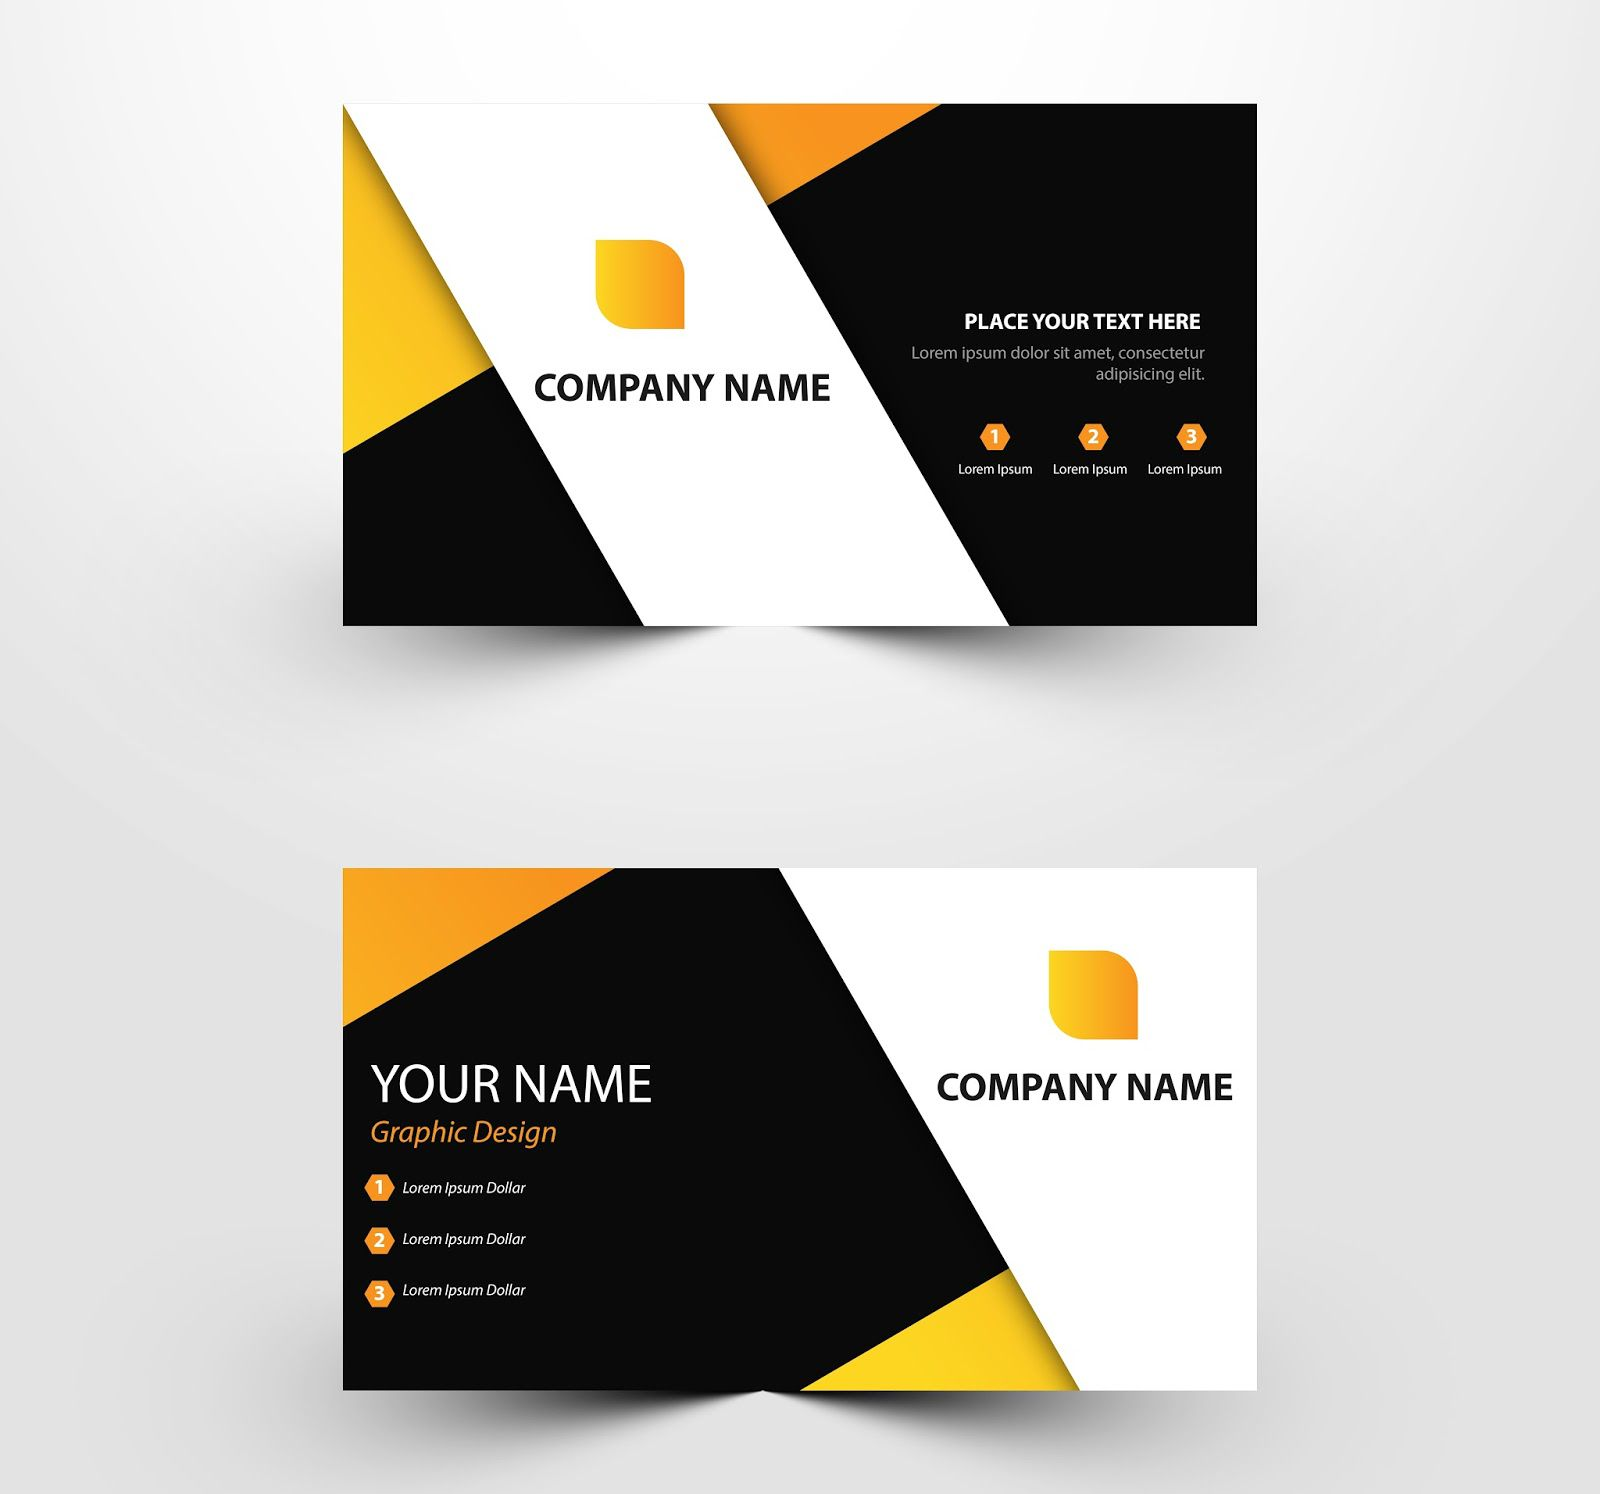 009 Stupendou Free Download Busines Card Template Highest Clarity  Templates Blank Microsoft WordFull